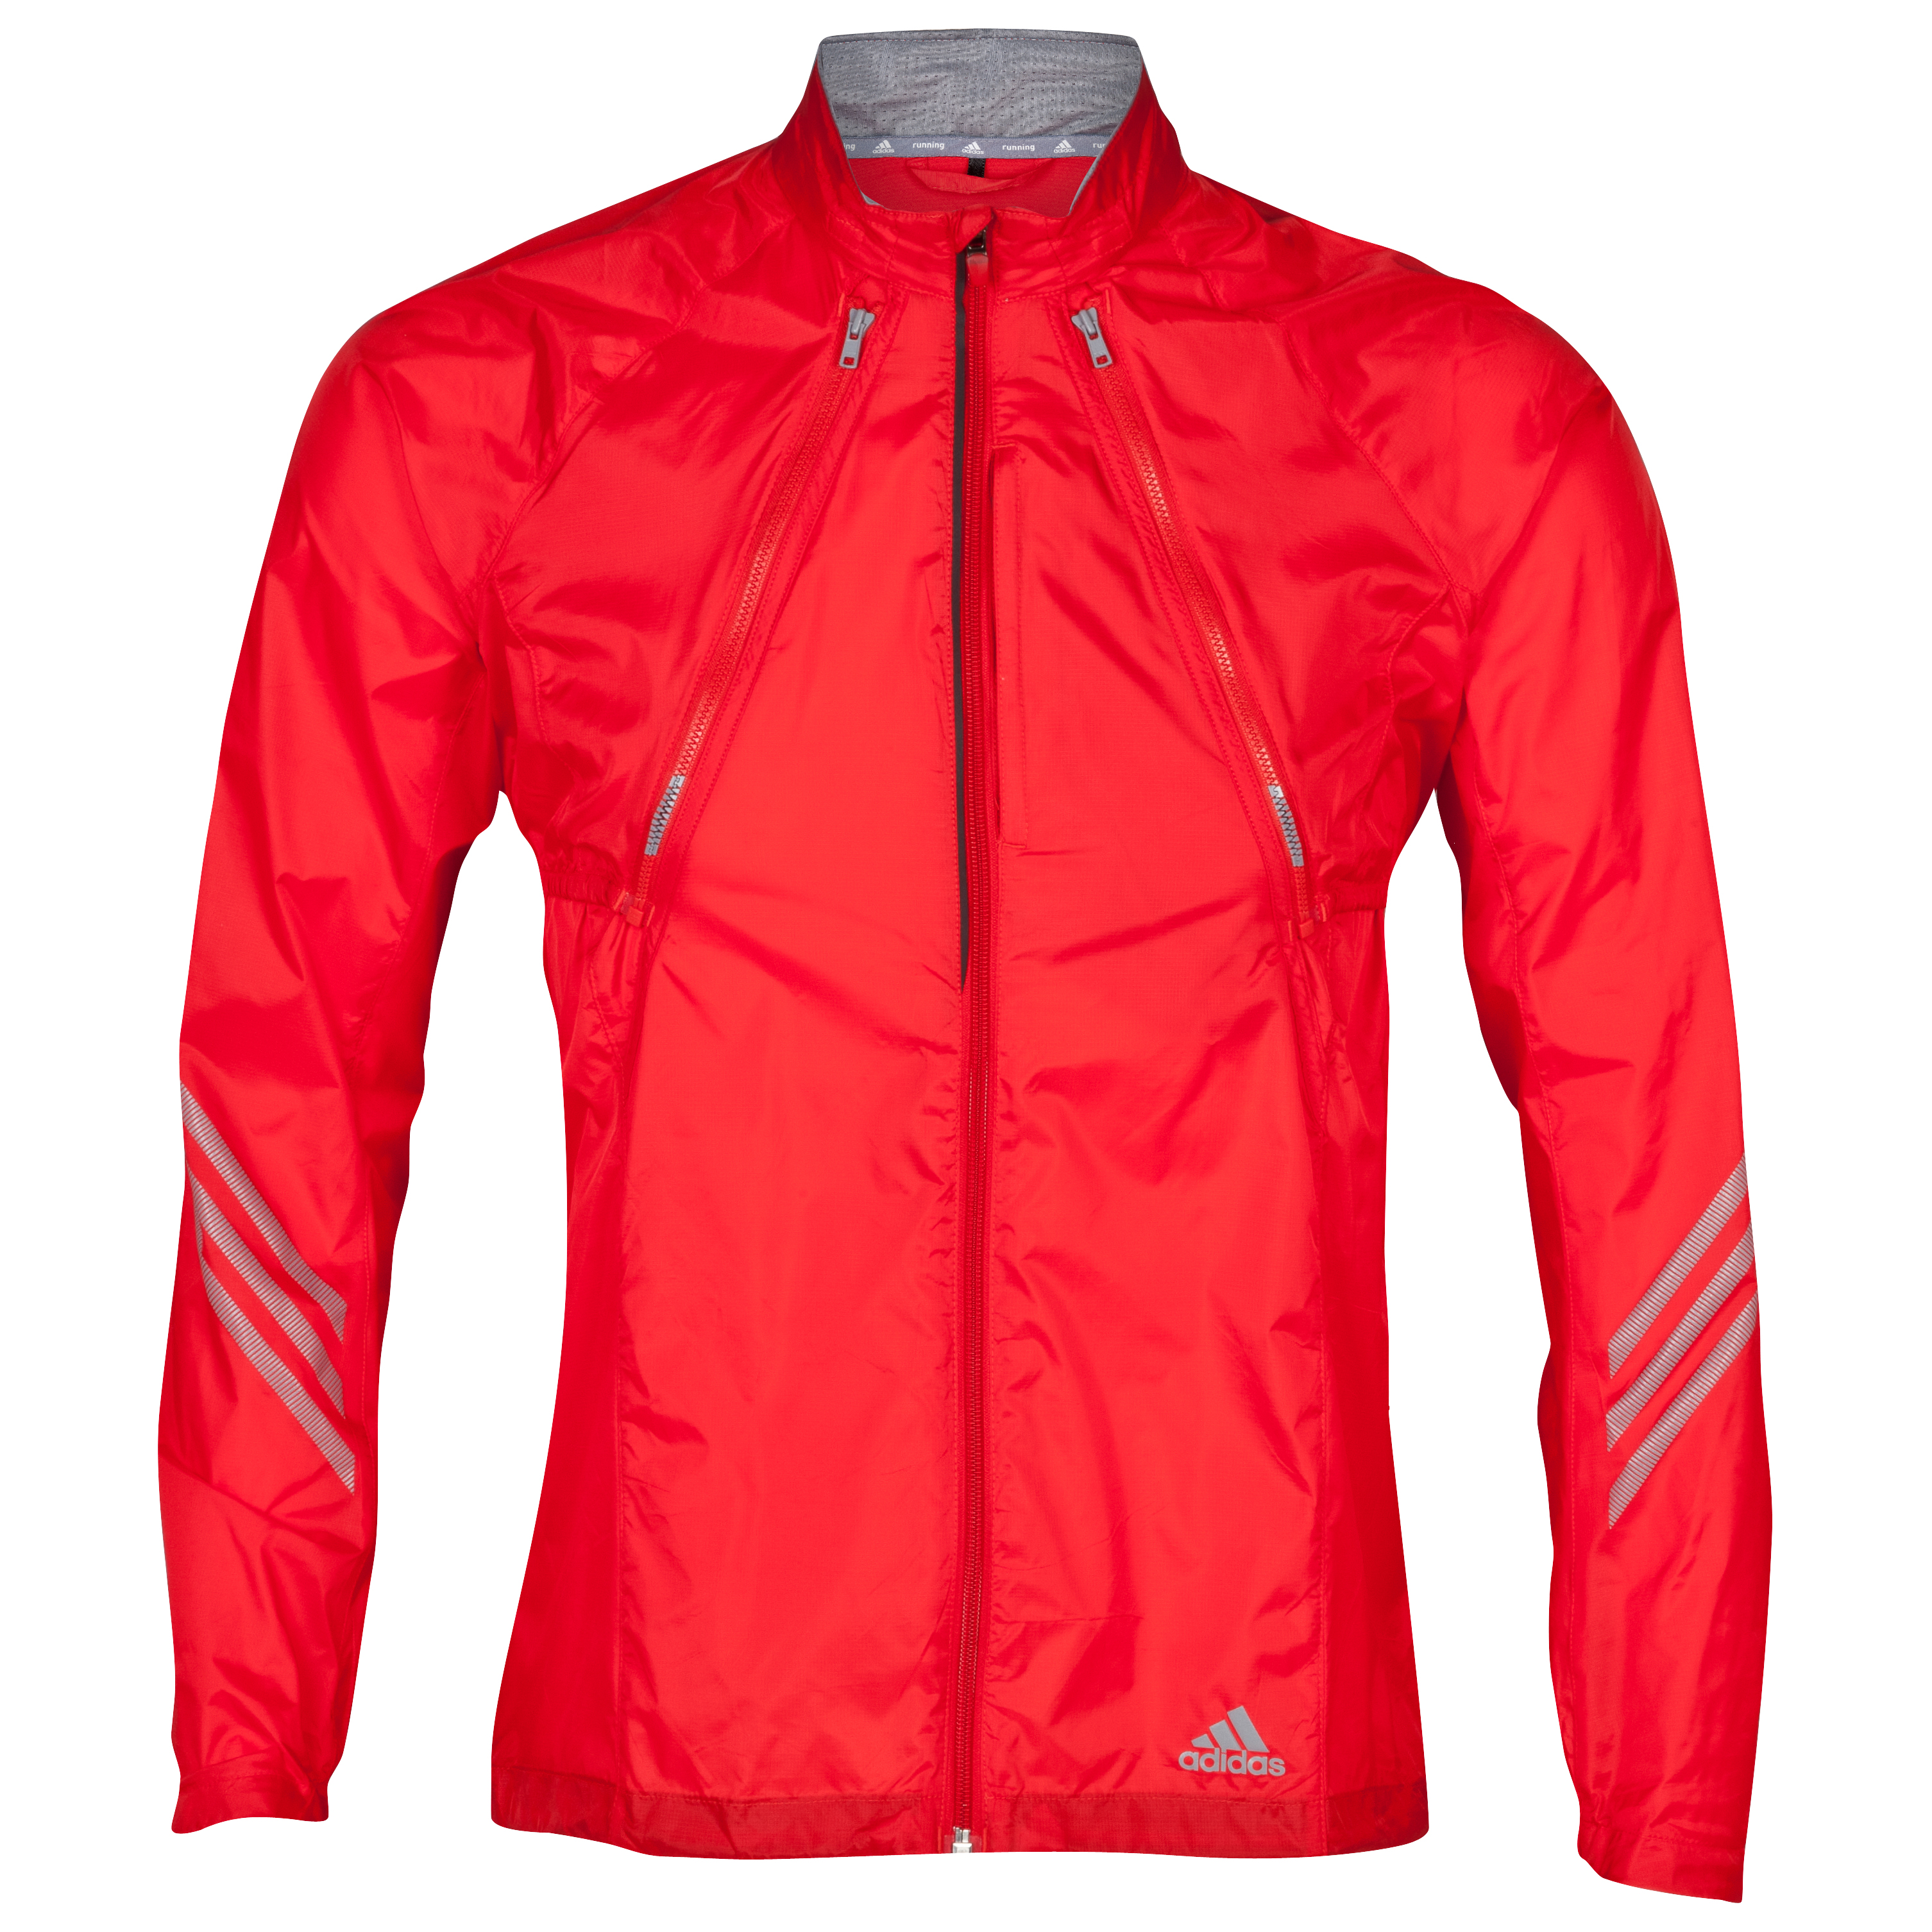 Adidas Supernova Converter Jacket - Vivid Red/Tech Grey